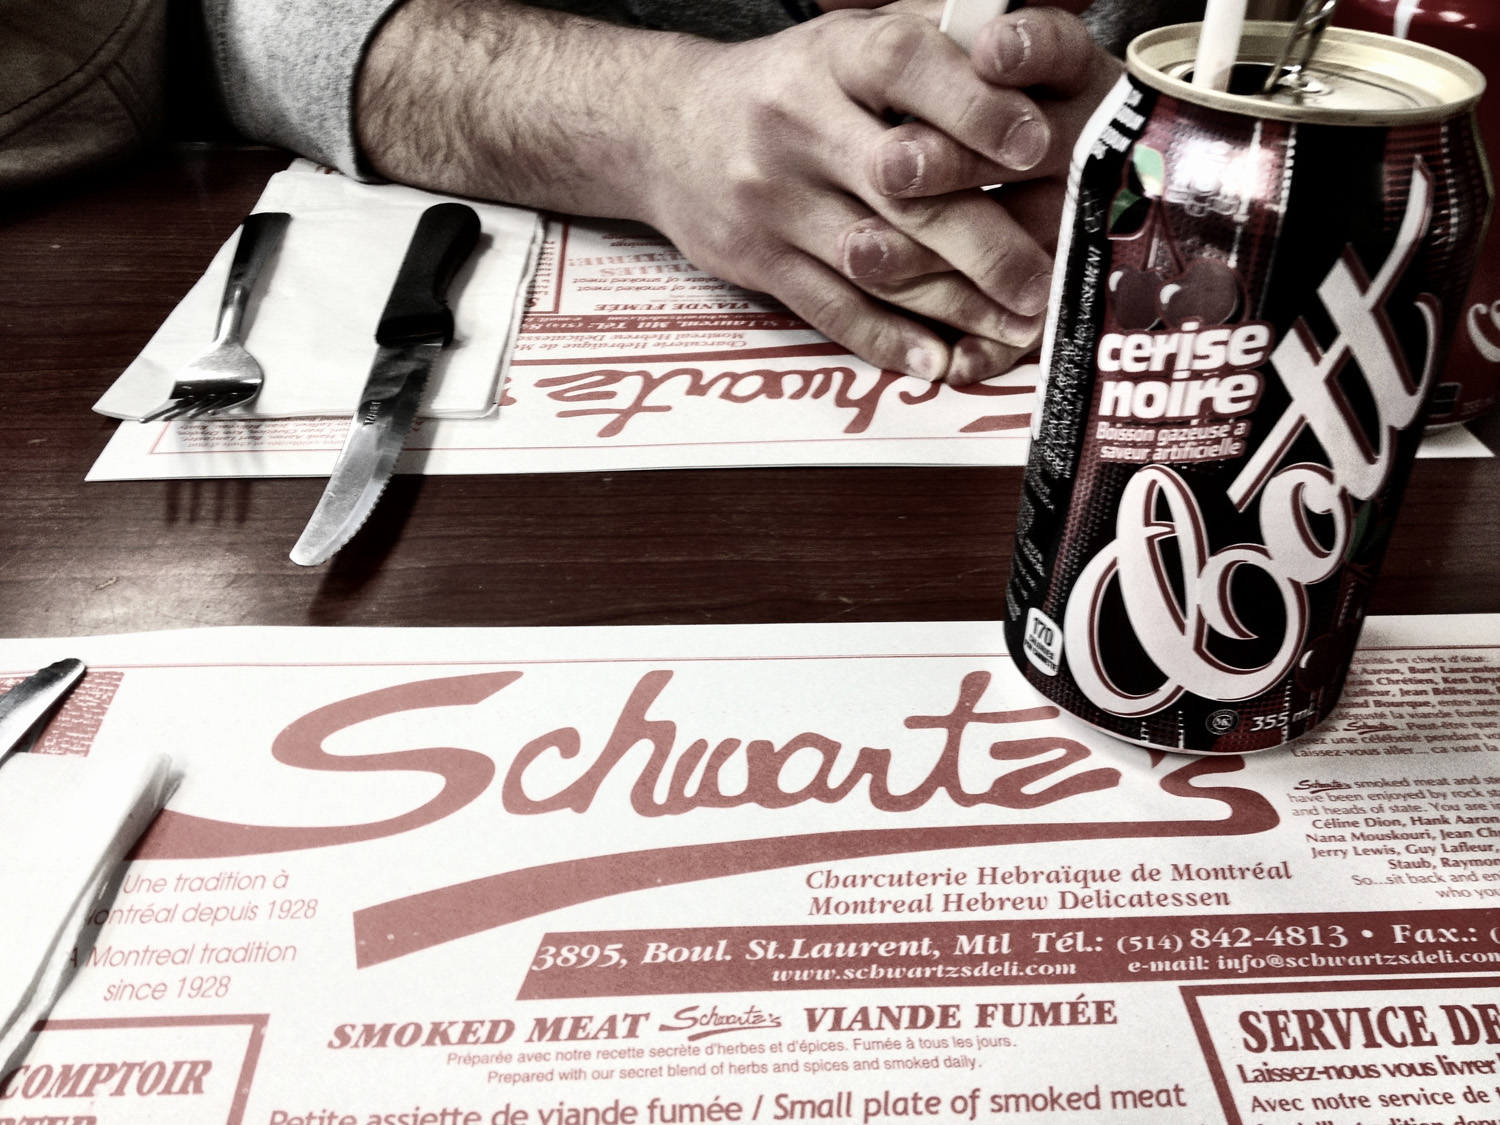 Montreal, Schwartzs, Deli, The Main, St. Lawrence, Smoked Meat